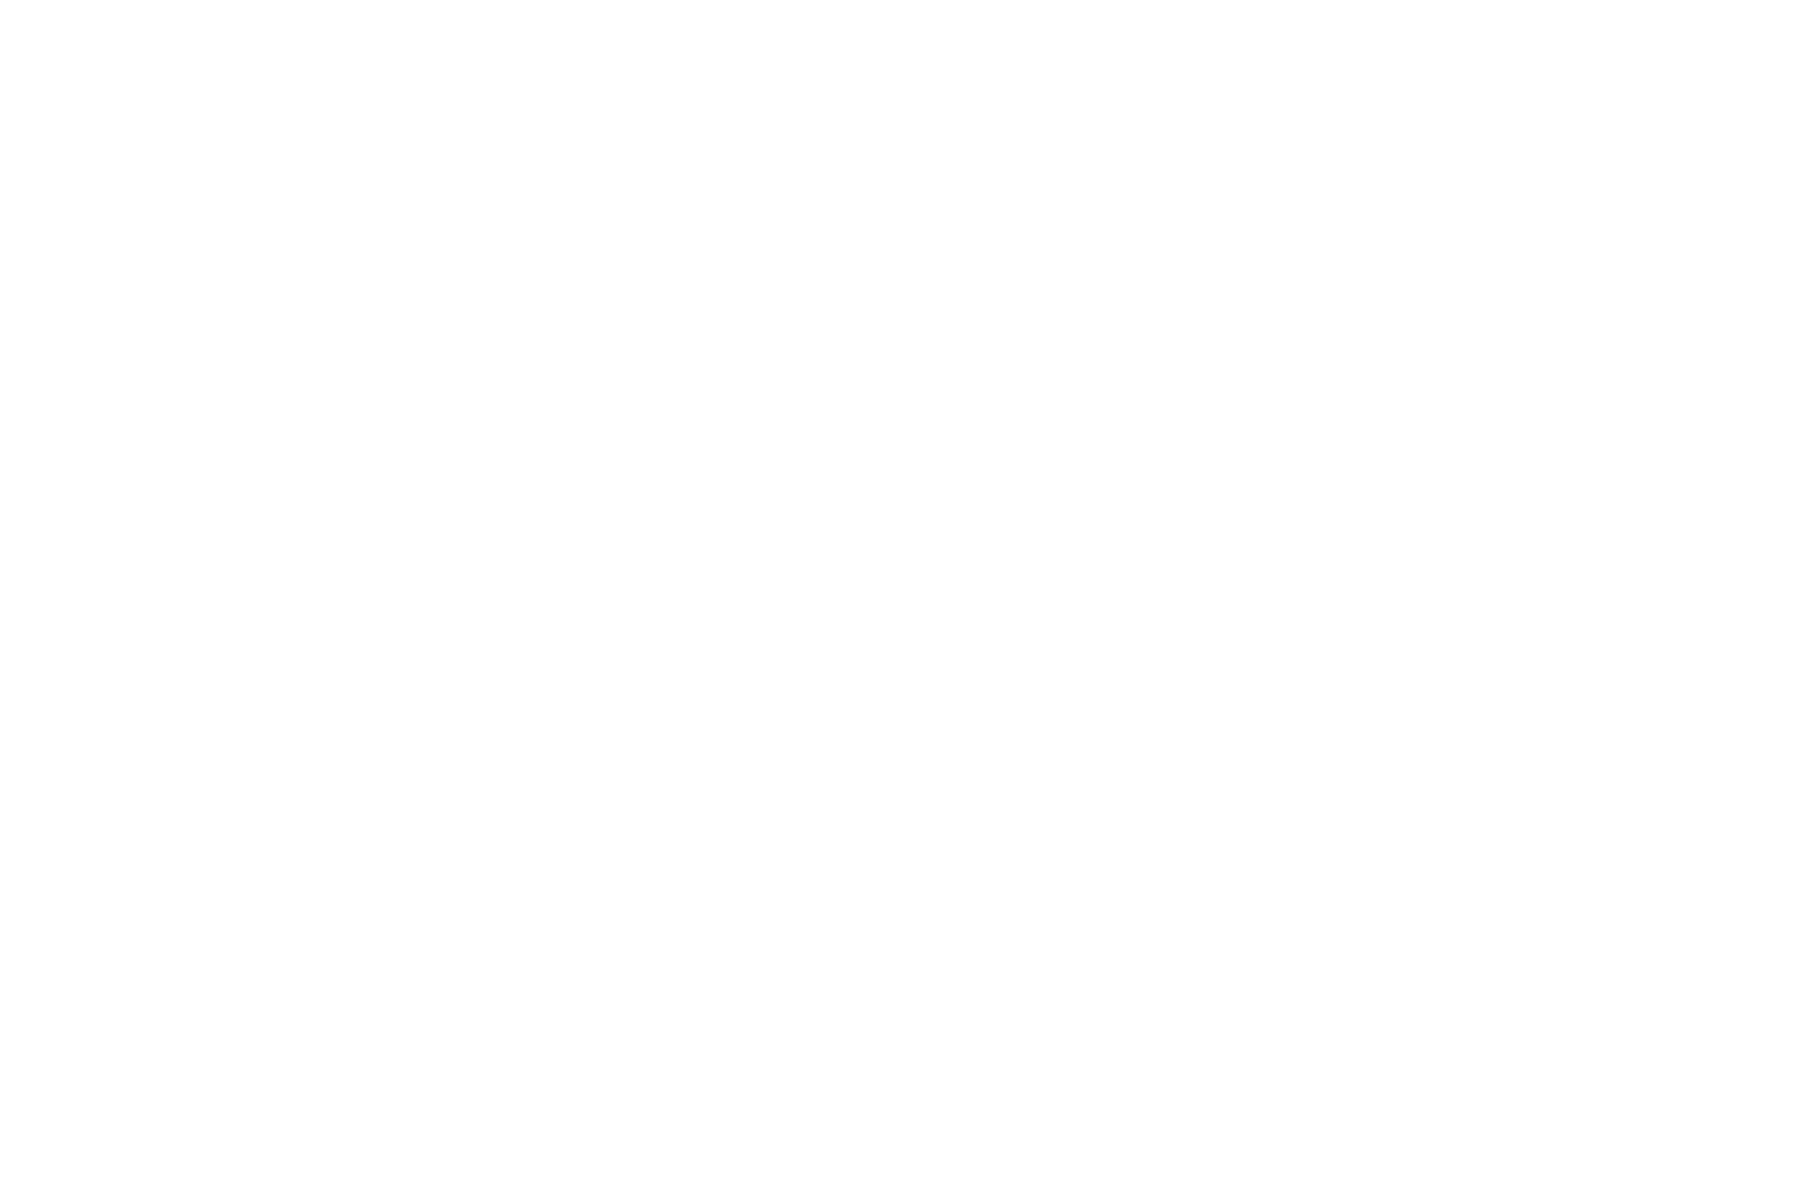 visualize-TEXT